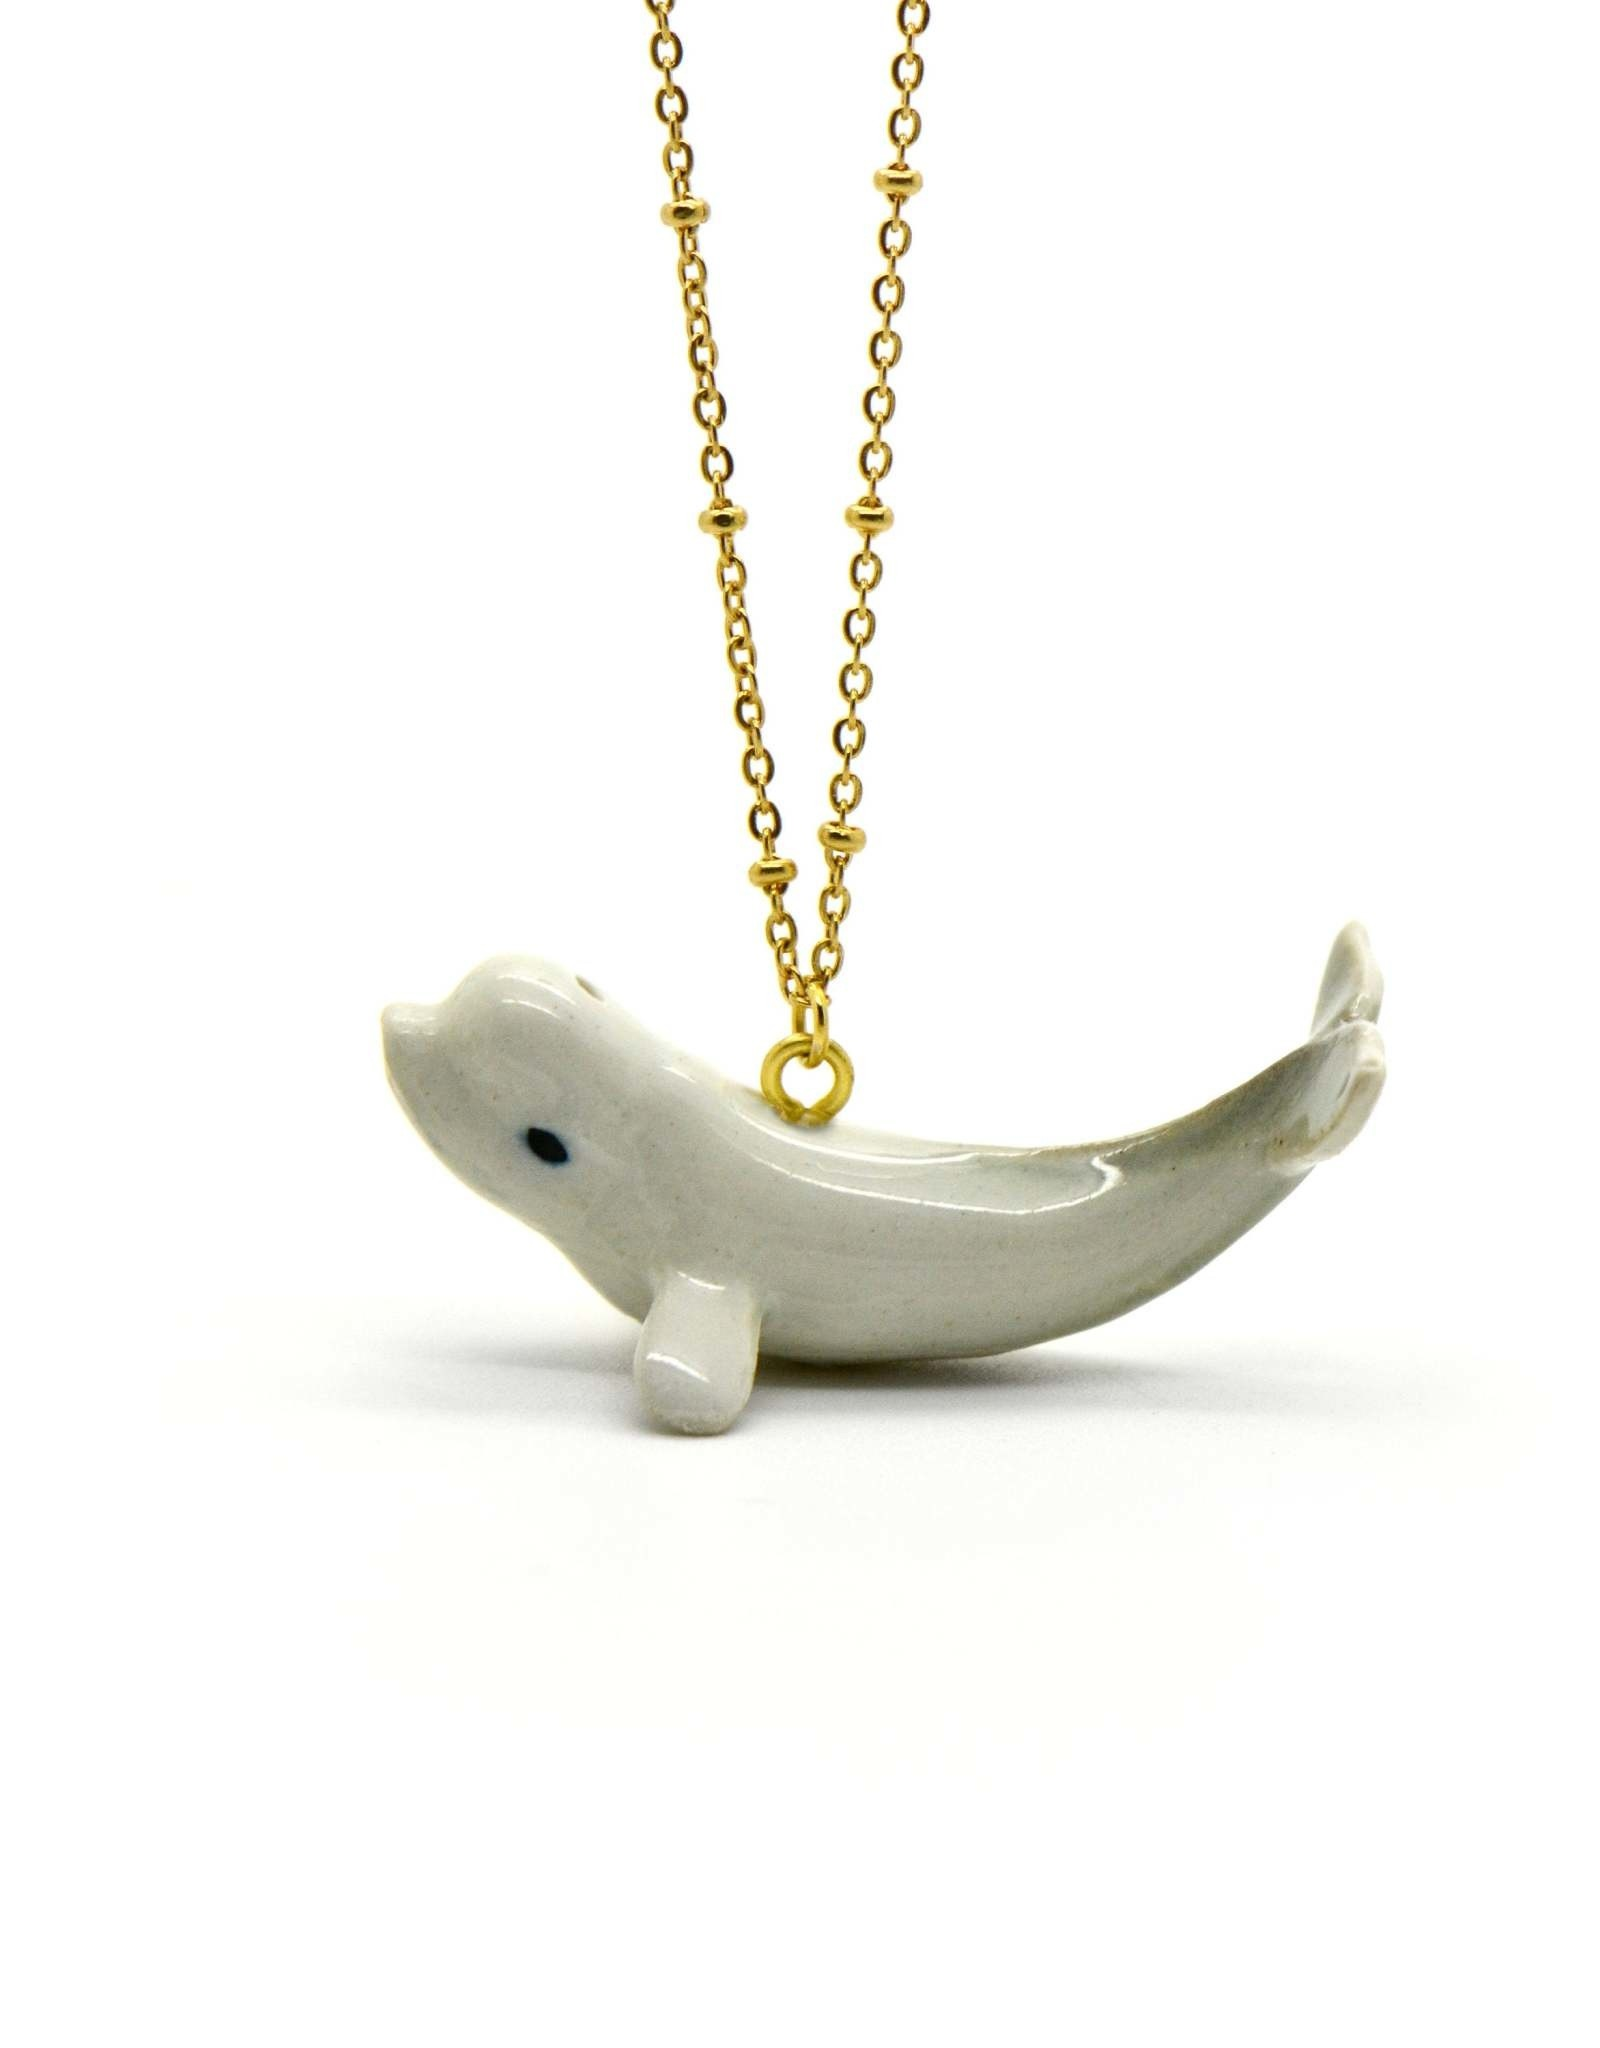 Handpainted Porcelain Beluga Whale Necklace